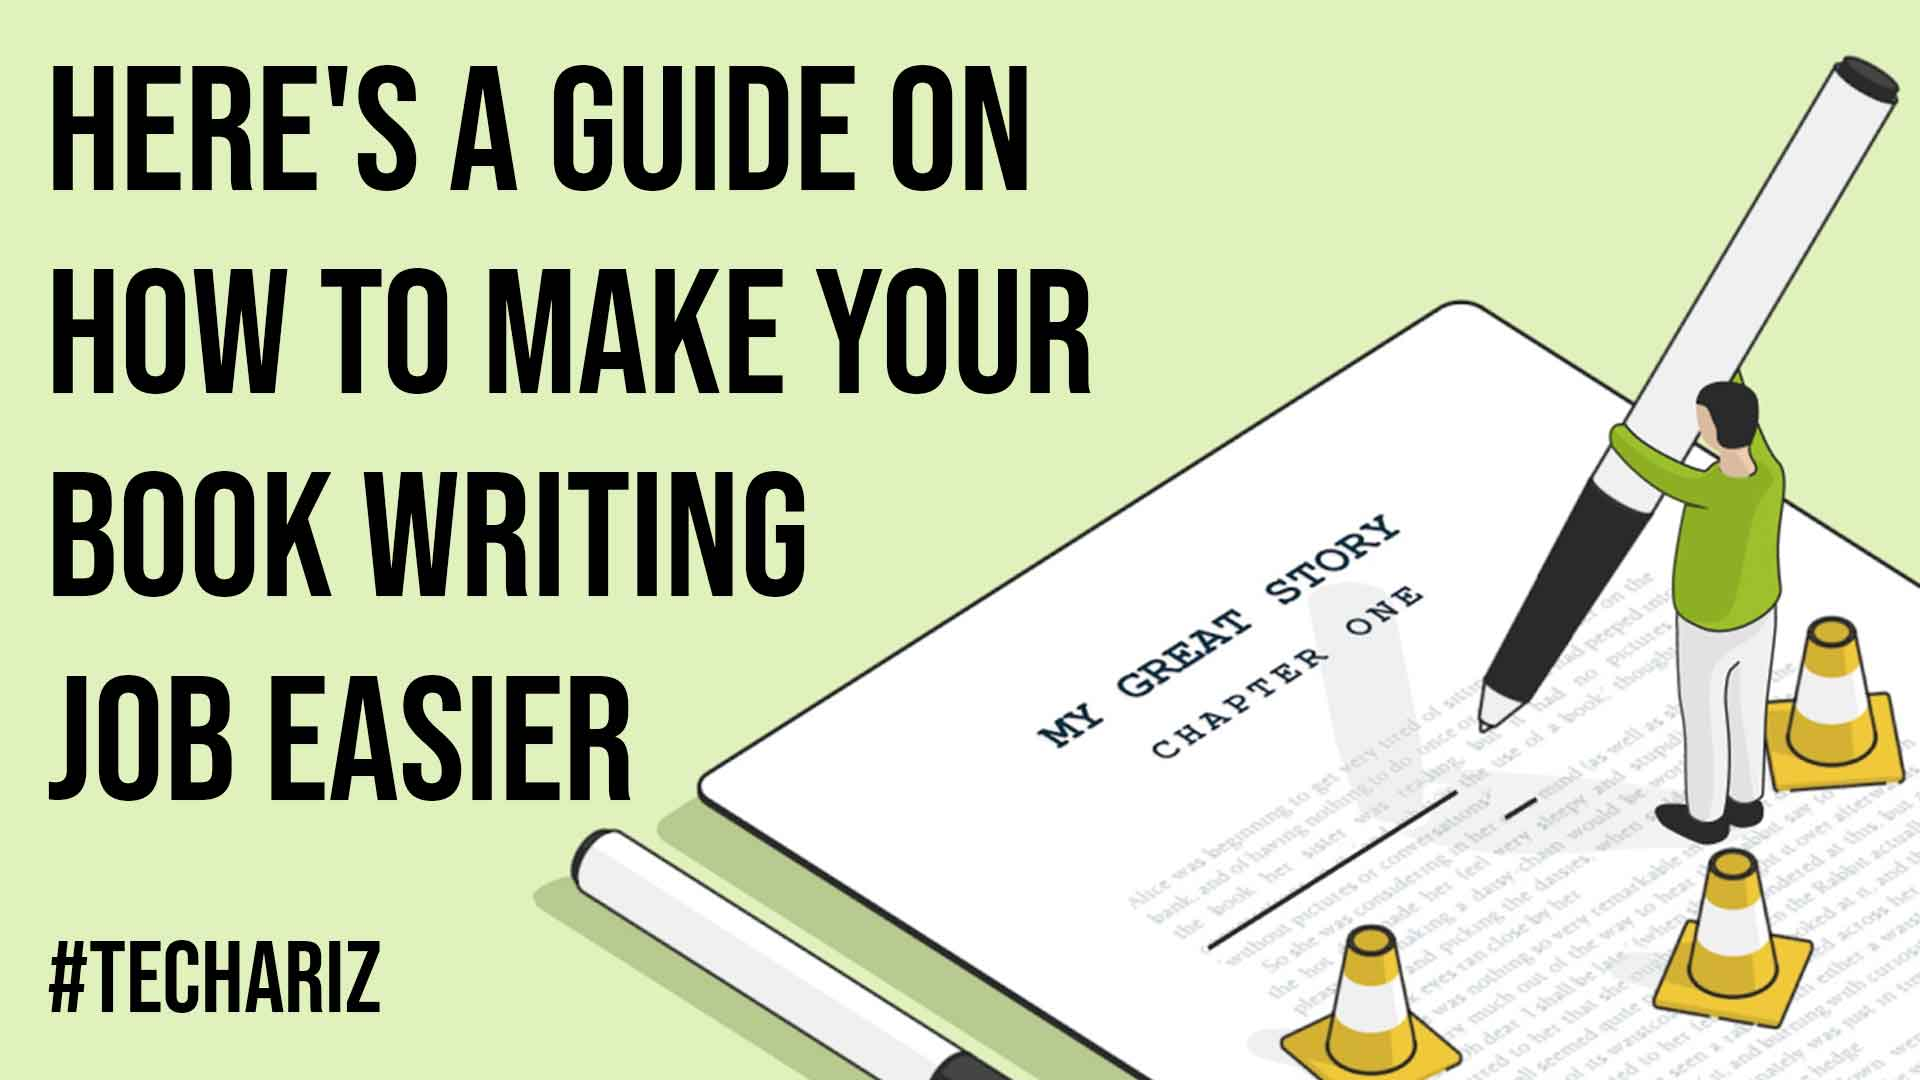 Here A Guide On How To Make Your Book Writing Job Easier